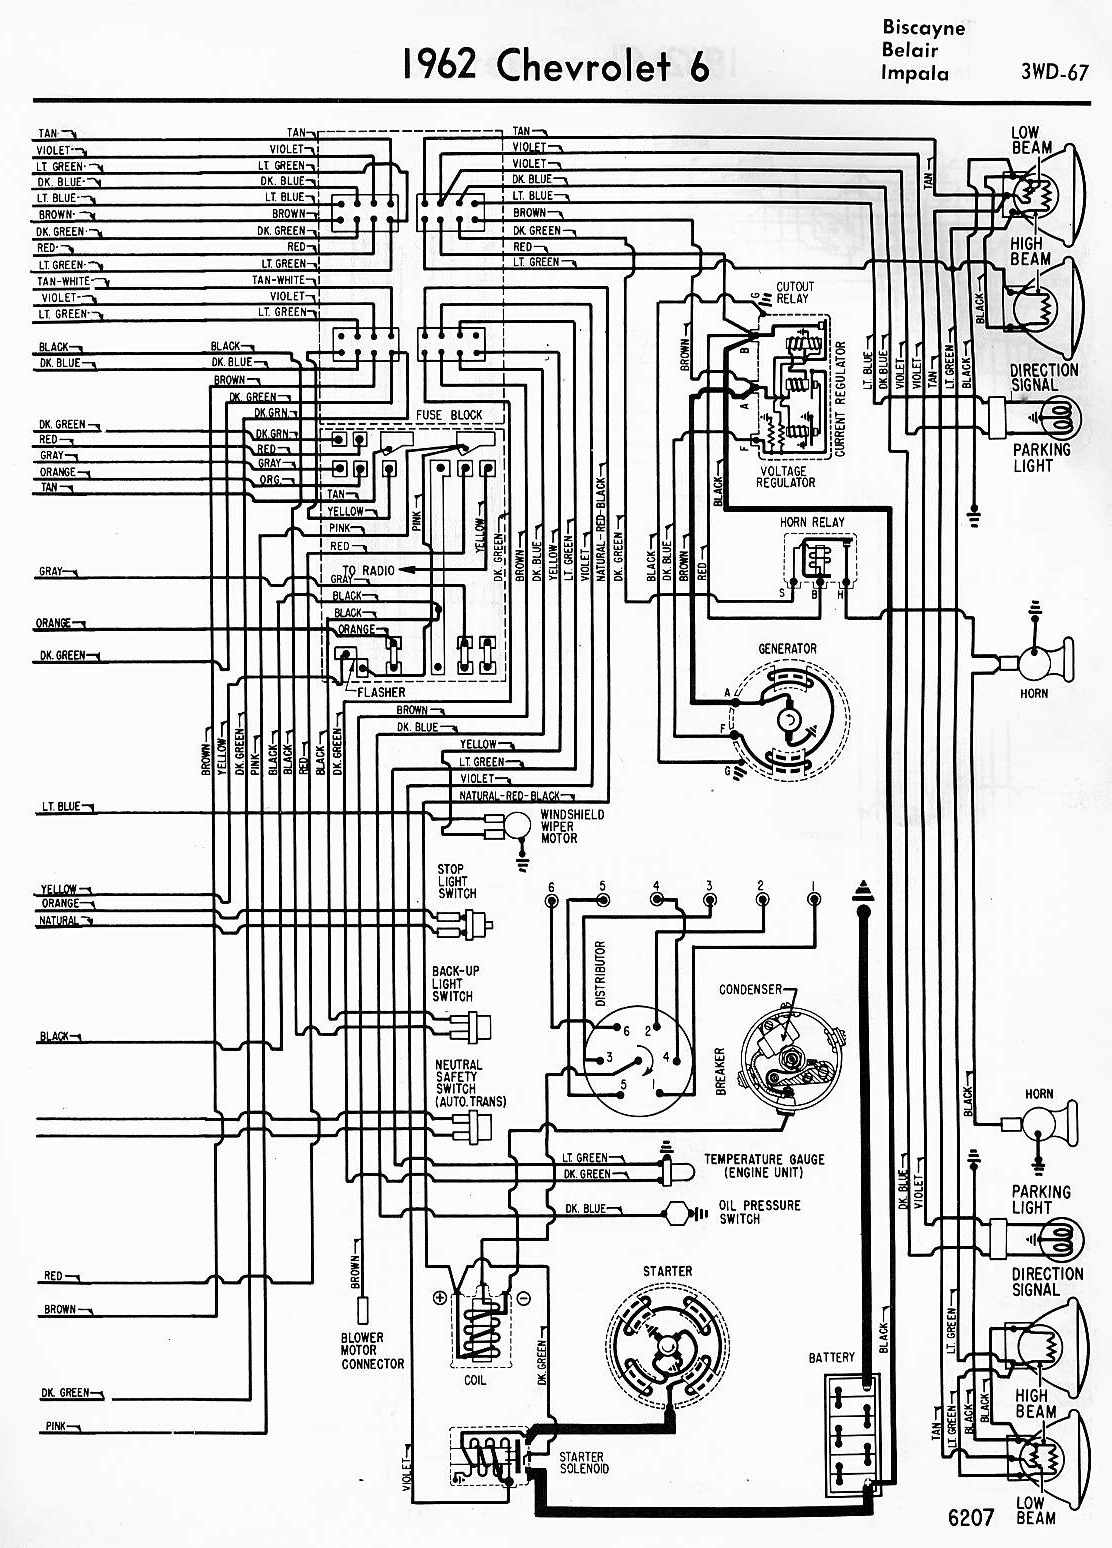 Electrical+Wiring+Diagram+Of+1964+Chevrolet+6 1964 impala wiring harness 1996 jeep cherokee wiring \u2022 wiring 1962 chevy truck wiring diagram at readyjetset.co